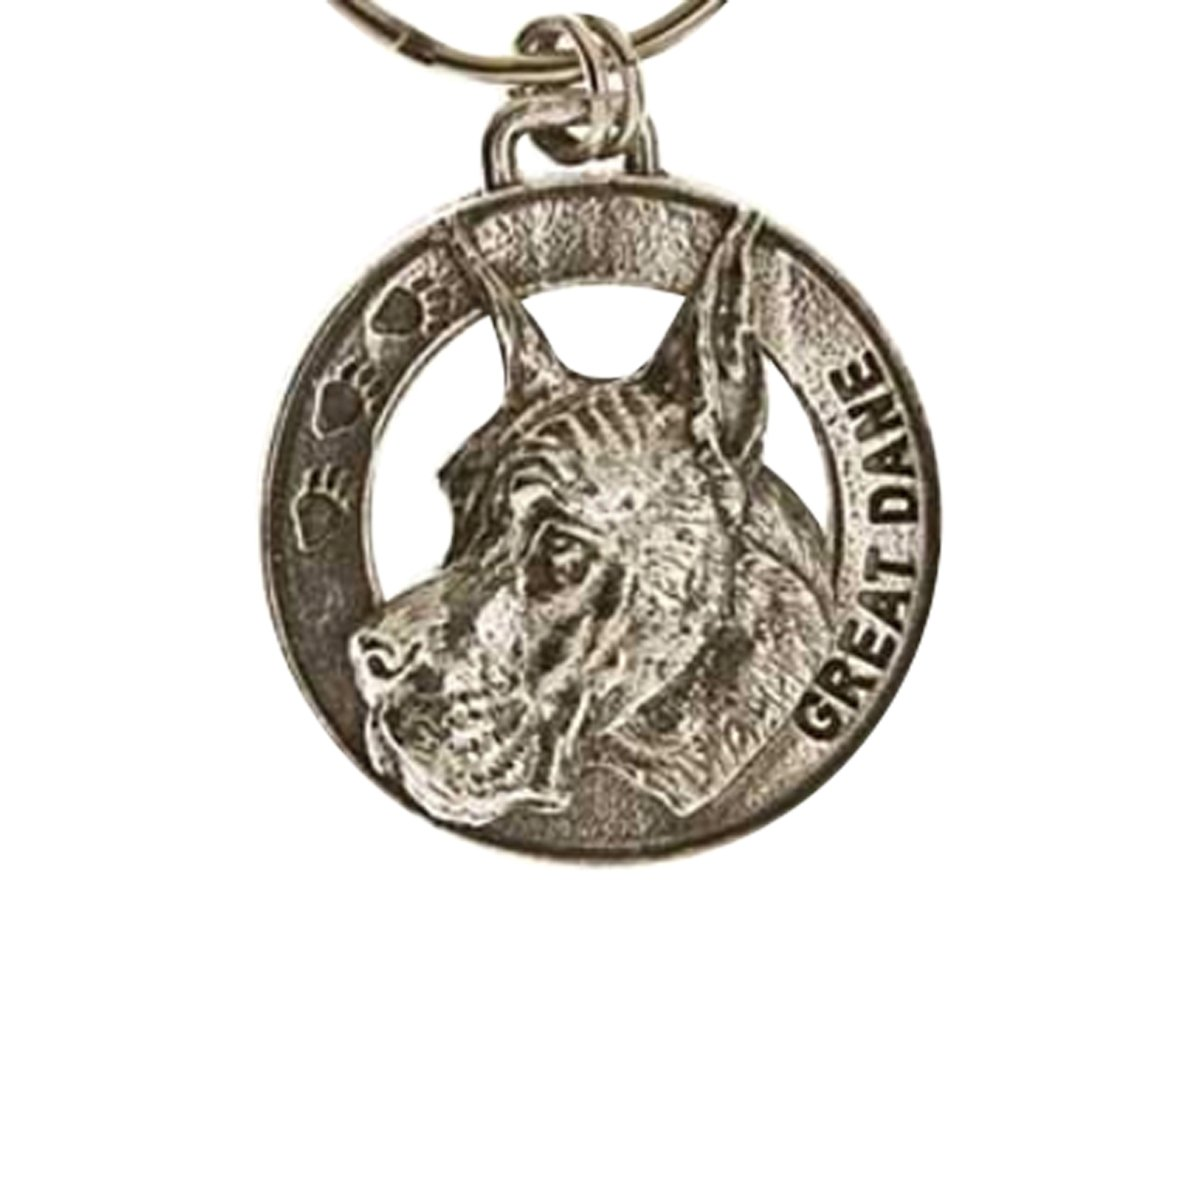 Creative Pewter Designs, Pewter Great Dane Key Chain, Antiqued Finish, DK094